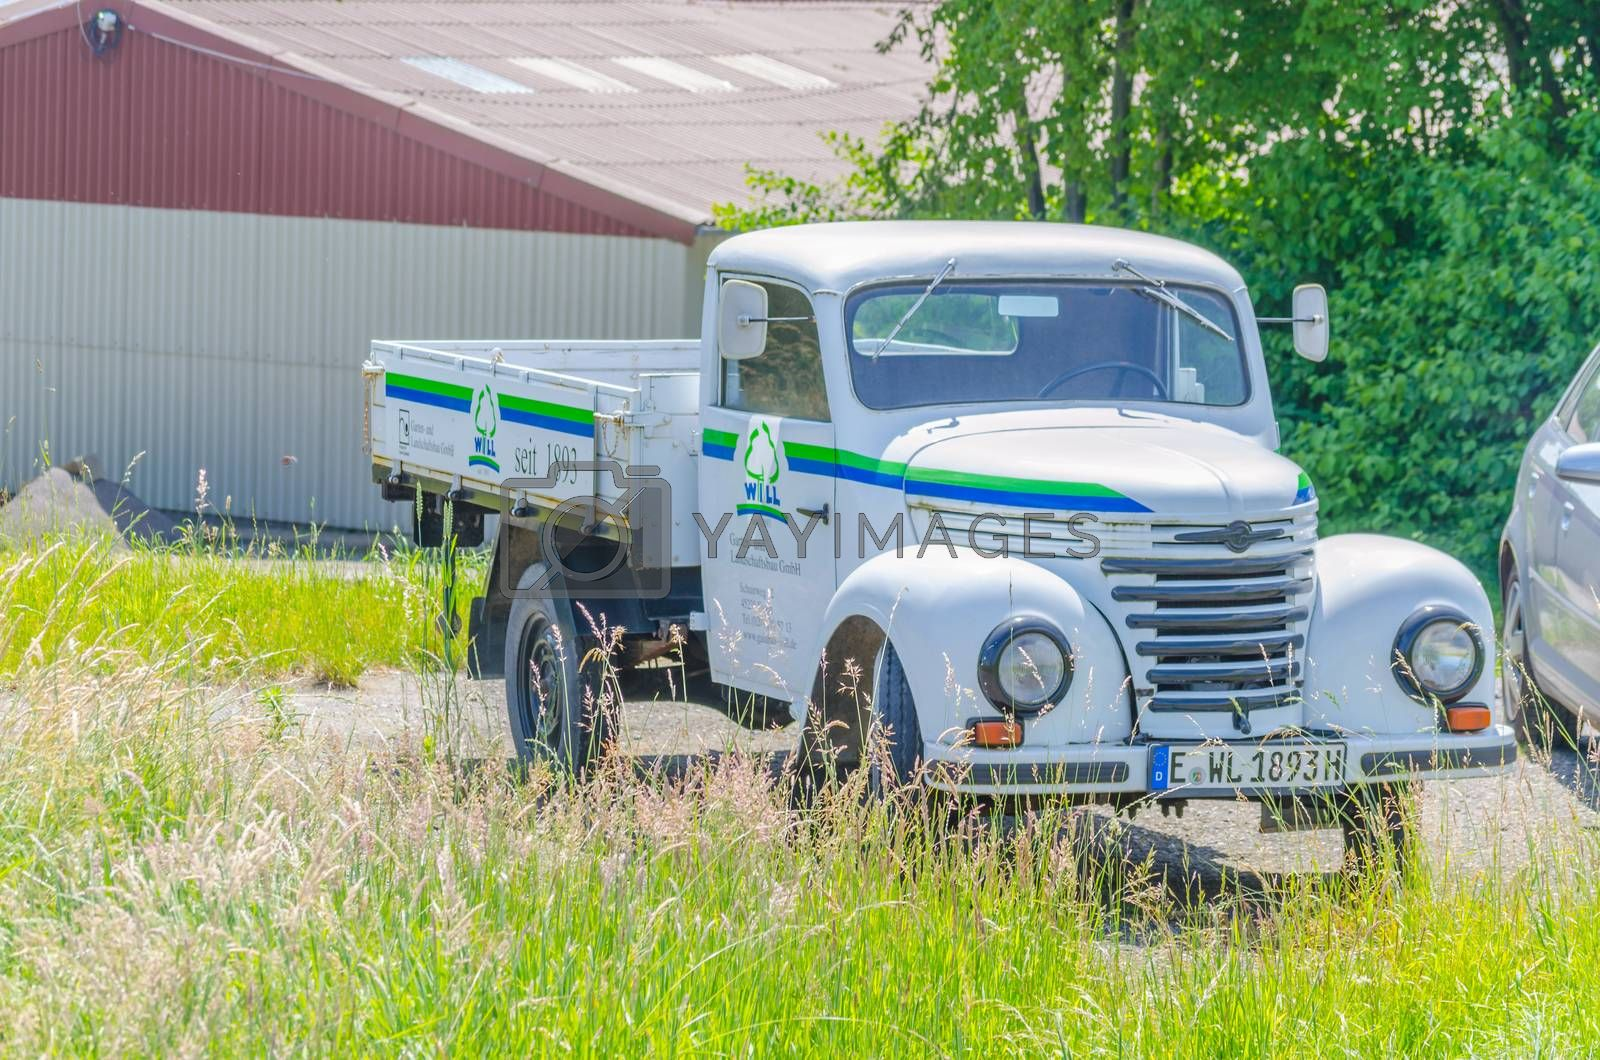 Essen, Nrw, Germany - June 13, 2014: In Essen way towards Mülheim Airport. Old truck parked on the street, to advertising. Oldtimer constructed from the year 1954 to 1961 in the former GDR in the VEB Barkas works Karl Marx Stadt.  This three-quarter-ton truck is the smallest of the former GDR have been.